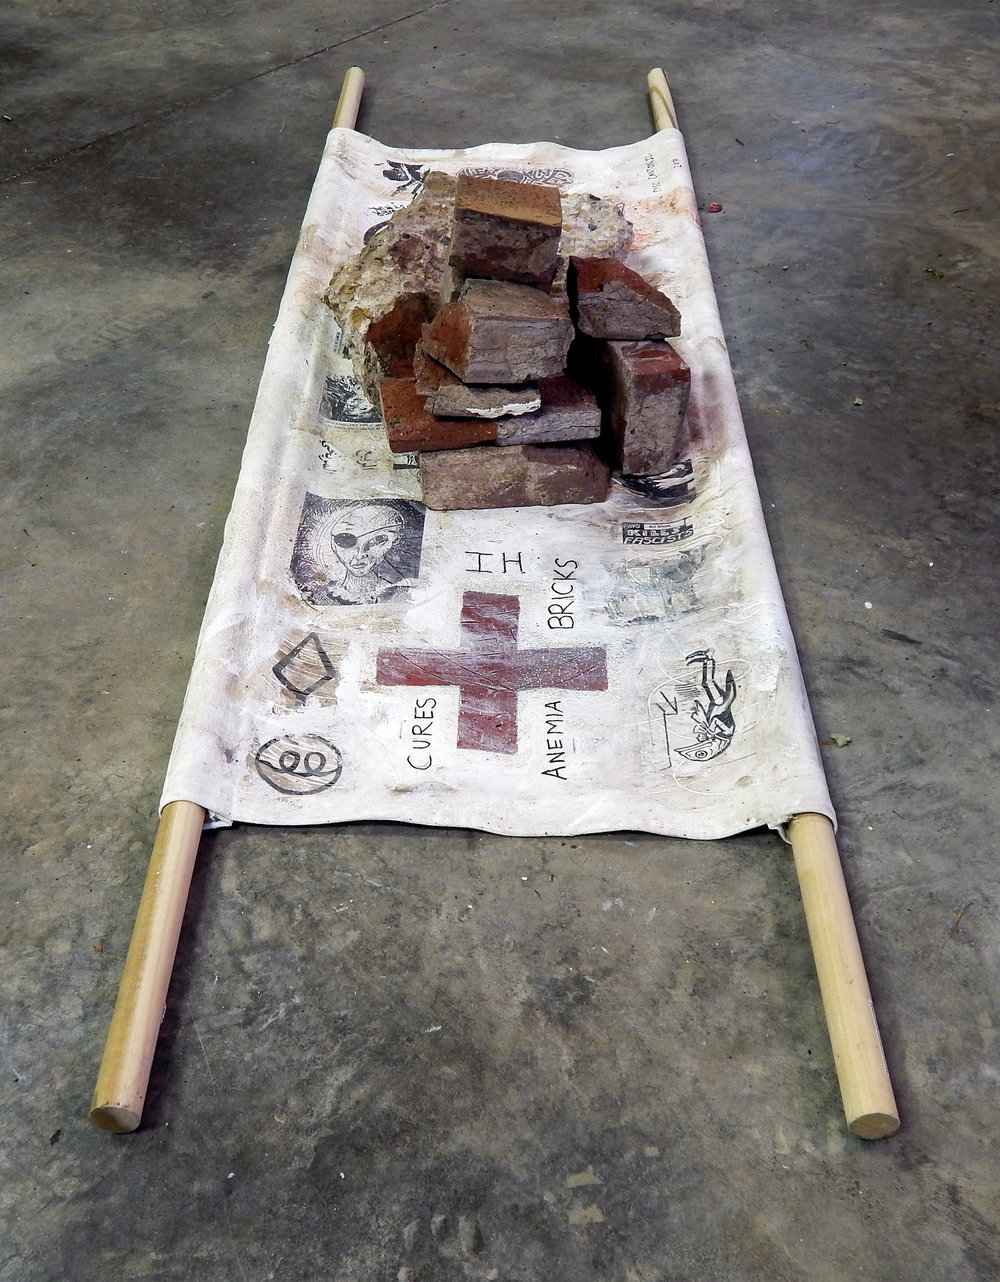 The Healing Properties of Post-Industrial Debris: IH Bricks (The Barista Who Could See the Future).   Acrylic, coffee, glitter ash, stickers, wig-hair, Sharpie on canvas with bricks from the abandoned International Harvester plant in Canton, Illinois and wood (2017). (Adam Turl)